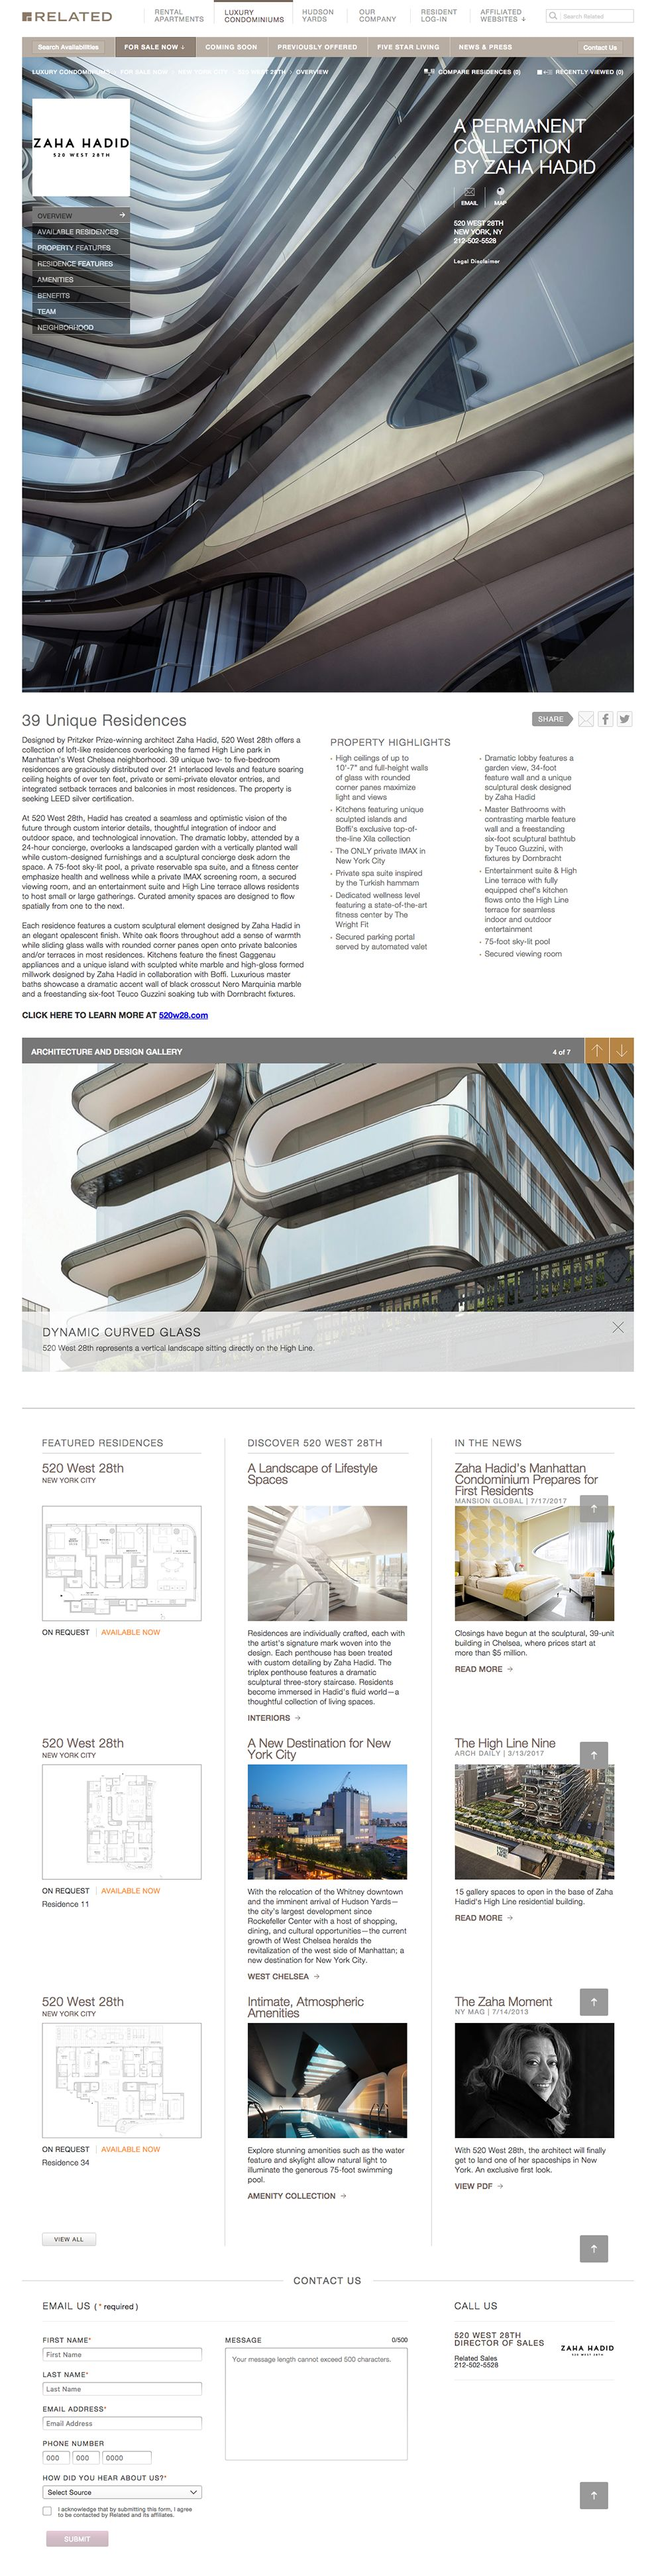 Related Sales Great Website Design Product Page